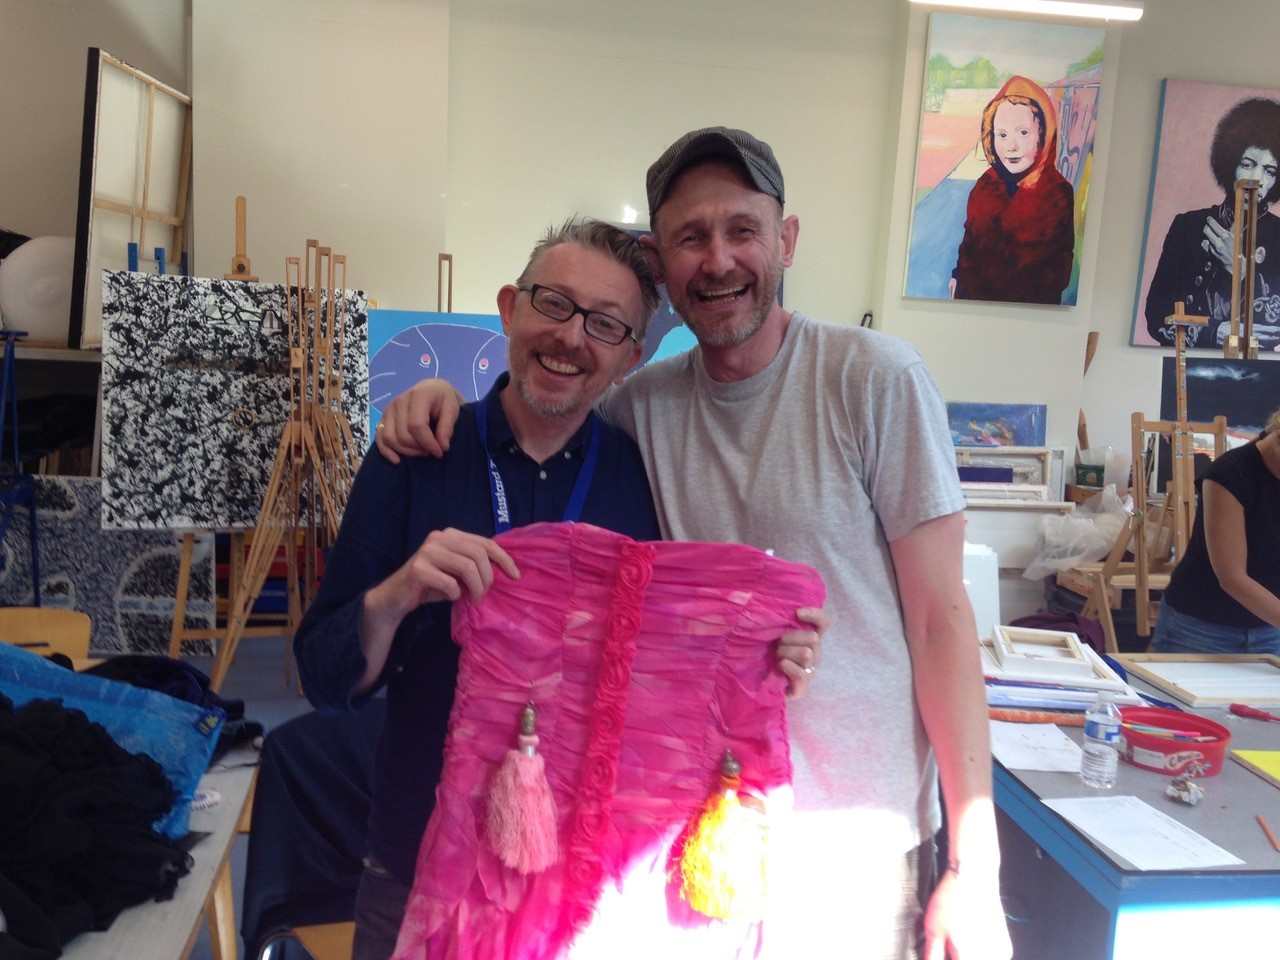 Two men in an art studio smiling and holding up a pink dress, looking directly into the camera.